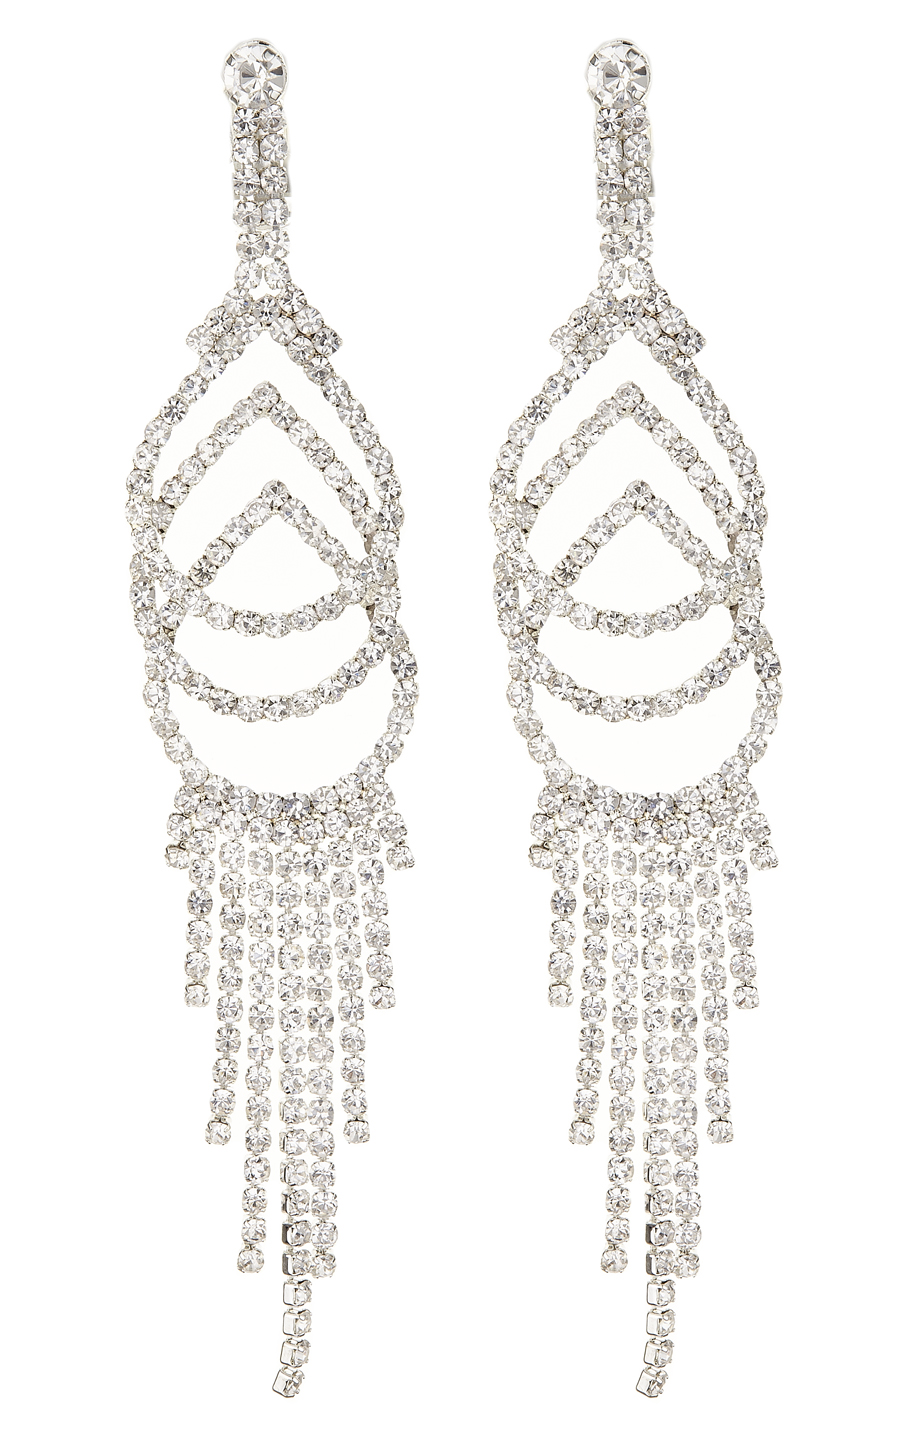 Clip On Earrings - Cael S - silver chandelier earring with clear crystals